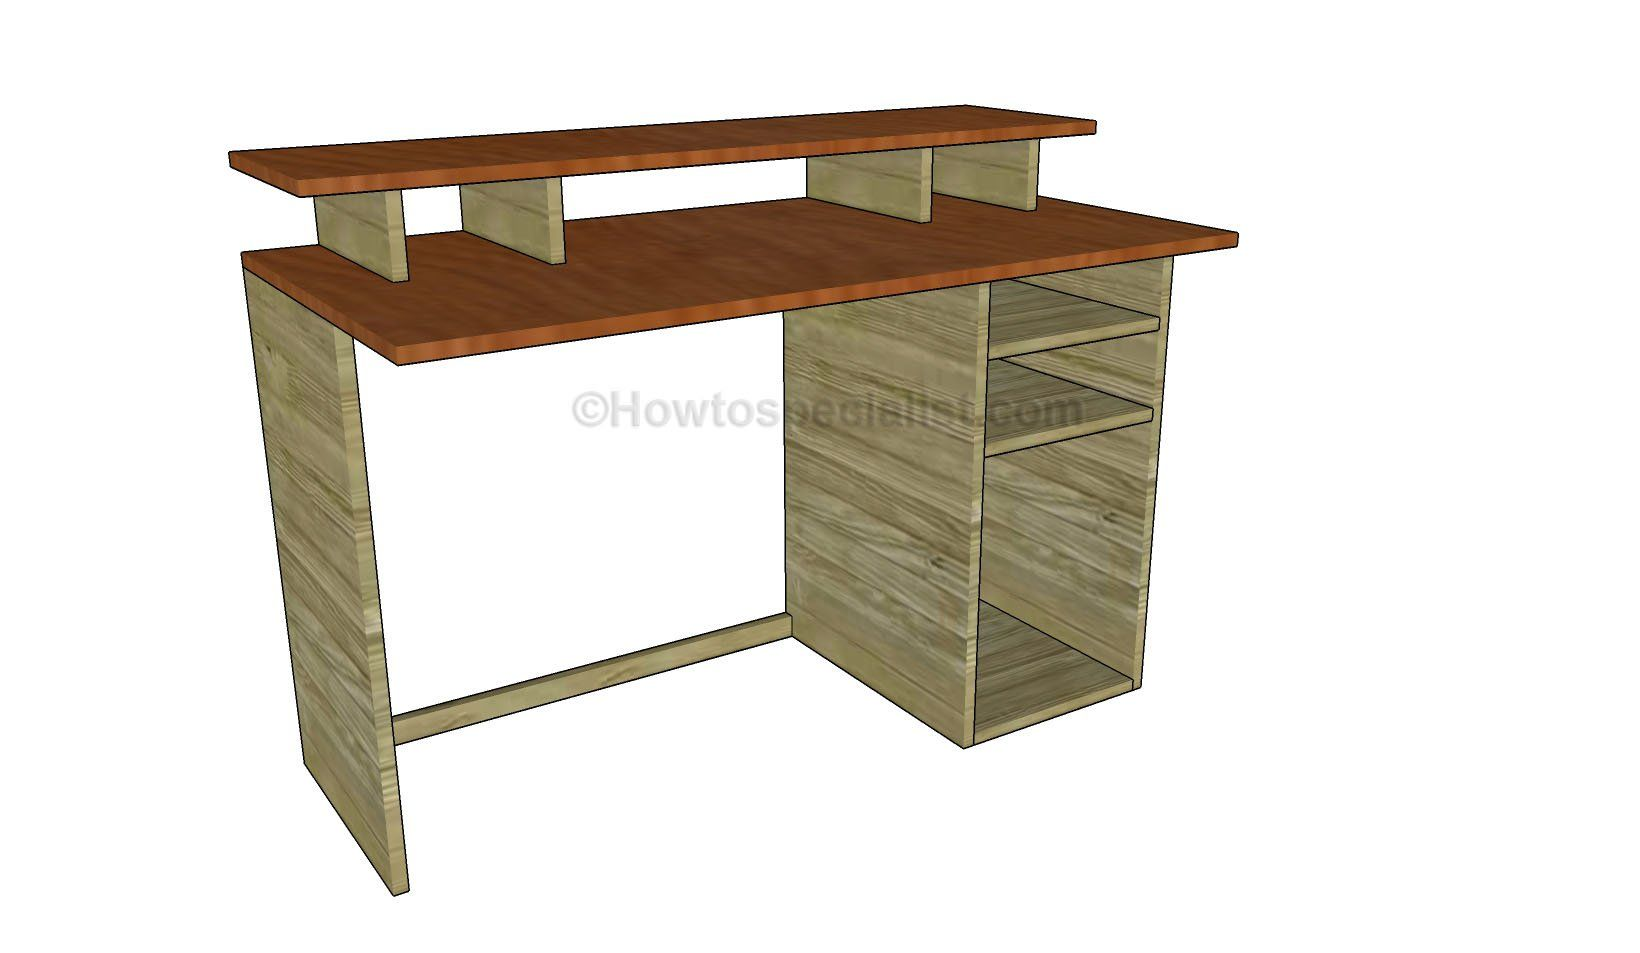 Free Computer Desk Plans Howtospecialist How To Build Step By Step Diy Plans Computer Desk Plans Built In Computer Desk Woodworking Desk Plans